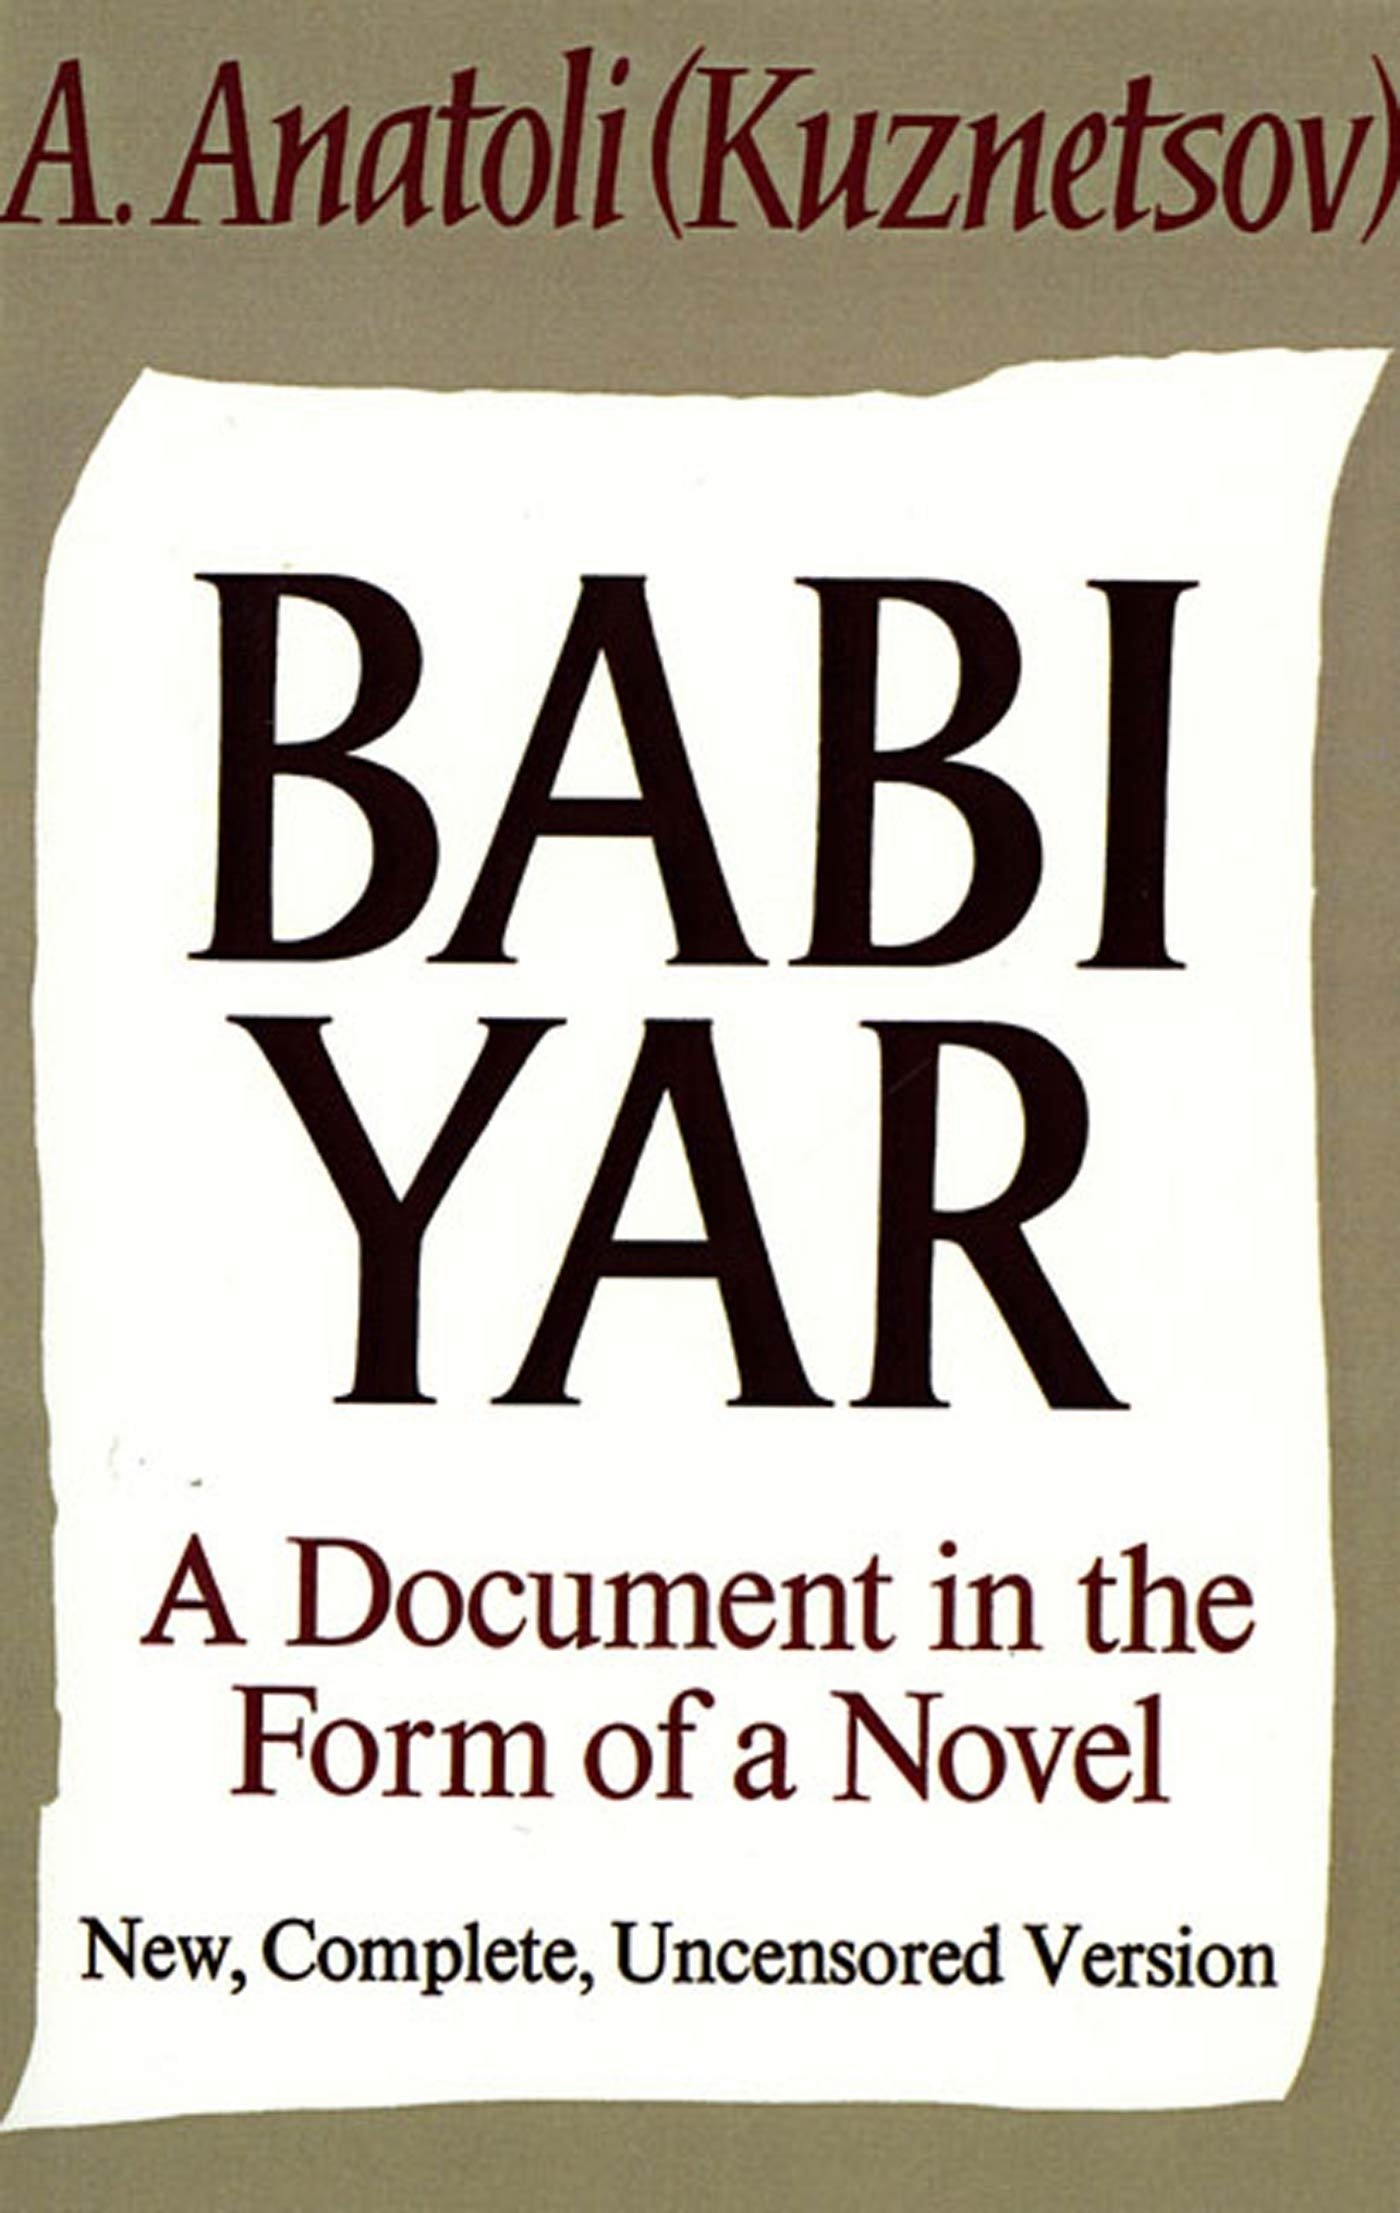 Amazon.com: Babi Yar: A Document in the Form of a Novel; New, Complete,  Uncensored Version (9780374528171): Anatoly Kuznetsov: Books